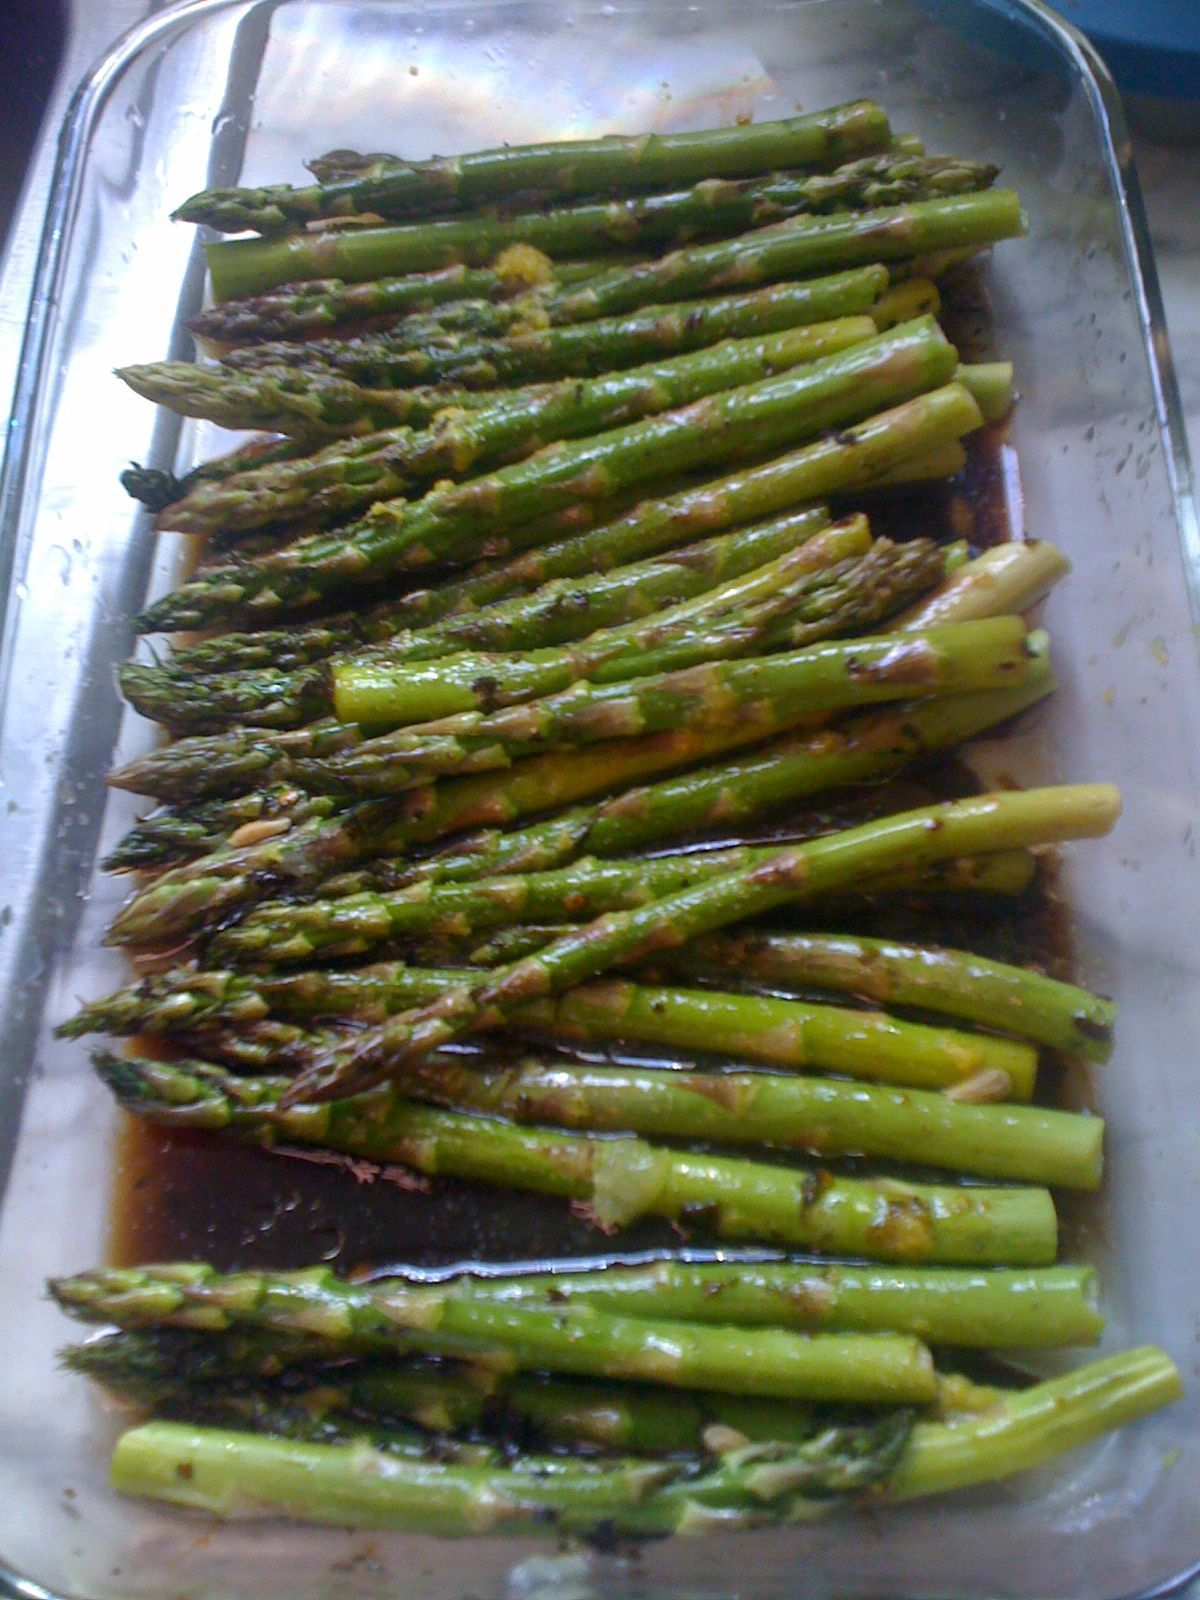 Baked Asparagus - Toss 1 bunch of trimmed asparagus with olive oil. Add the juice and zest if 2 lemons. Sprinkle with garlic powder, salt and pepper. Bake for 15-20 minutes. Asparagus should be slightly crunchy when done.